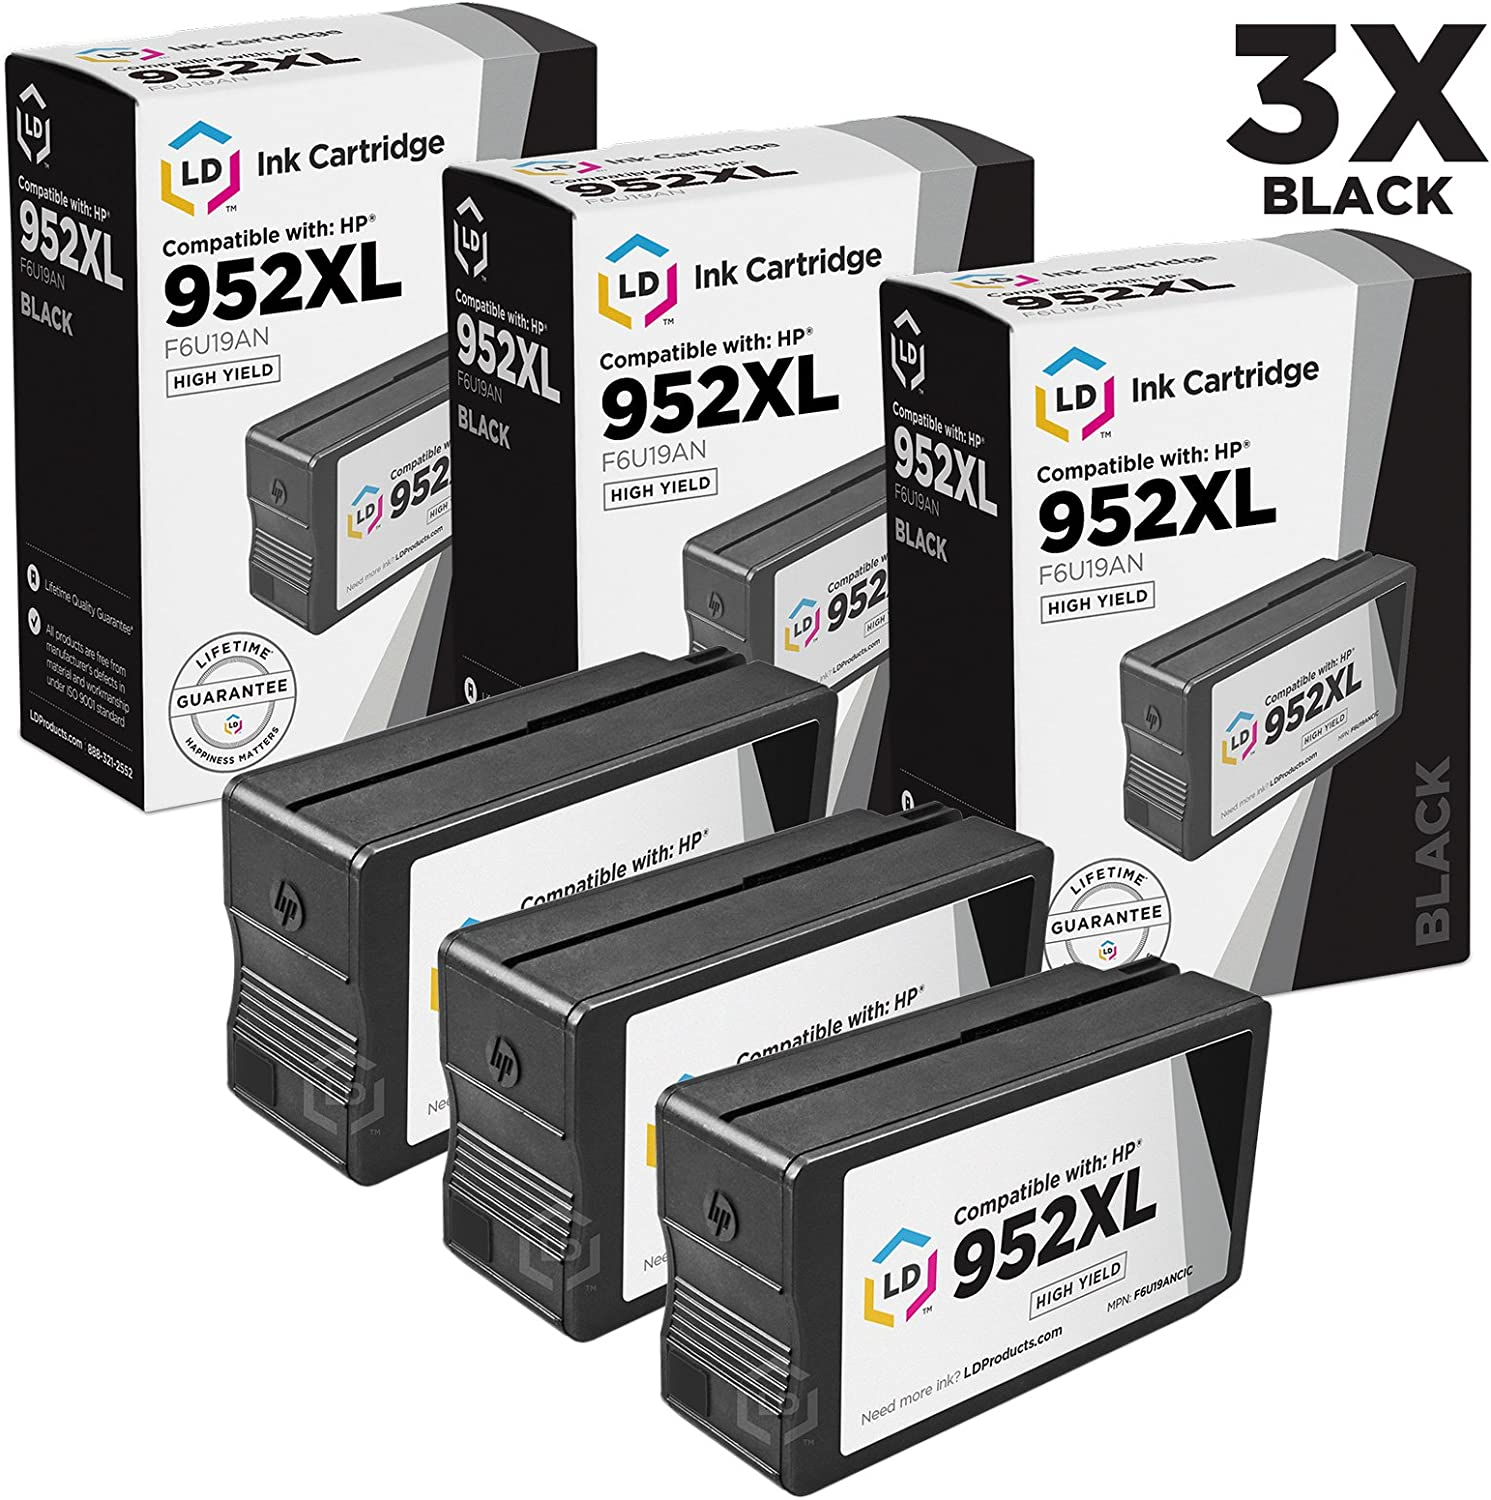 LD Compatible Ink Cartridge Replacements for HP 952XL F6U19AN High Yield (Black, 3-Pack)